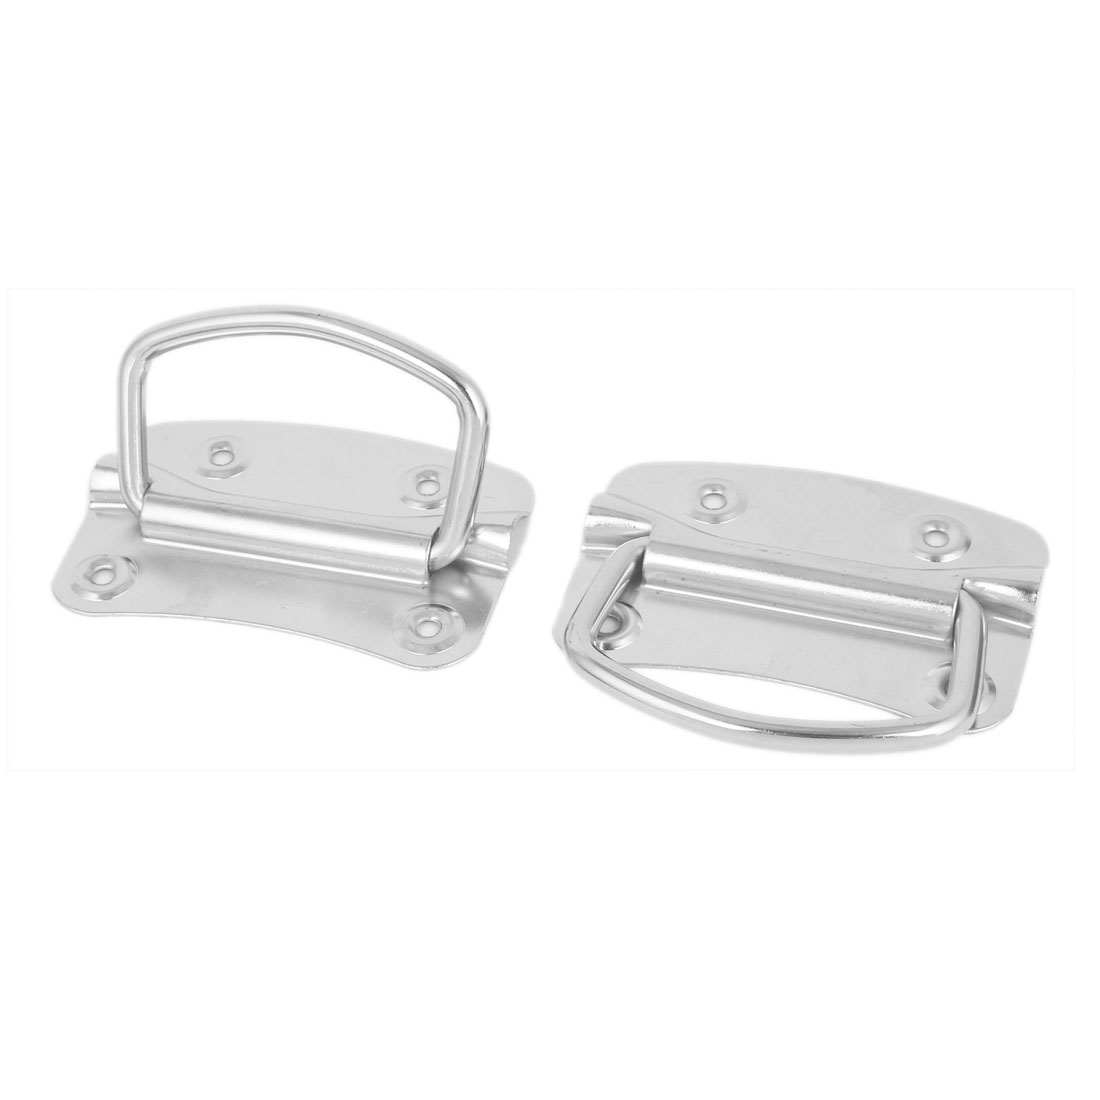 Chest Cupboard Cabinet Metal Flush Pull Handle 2pcs